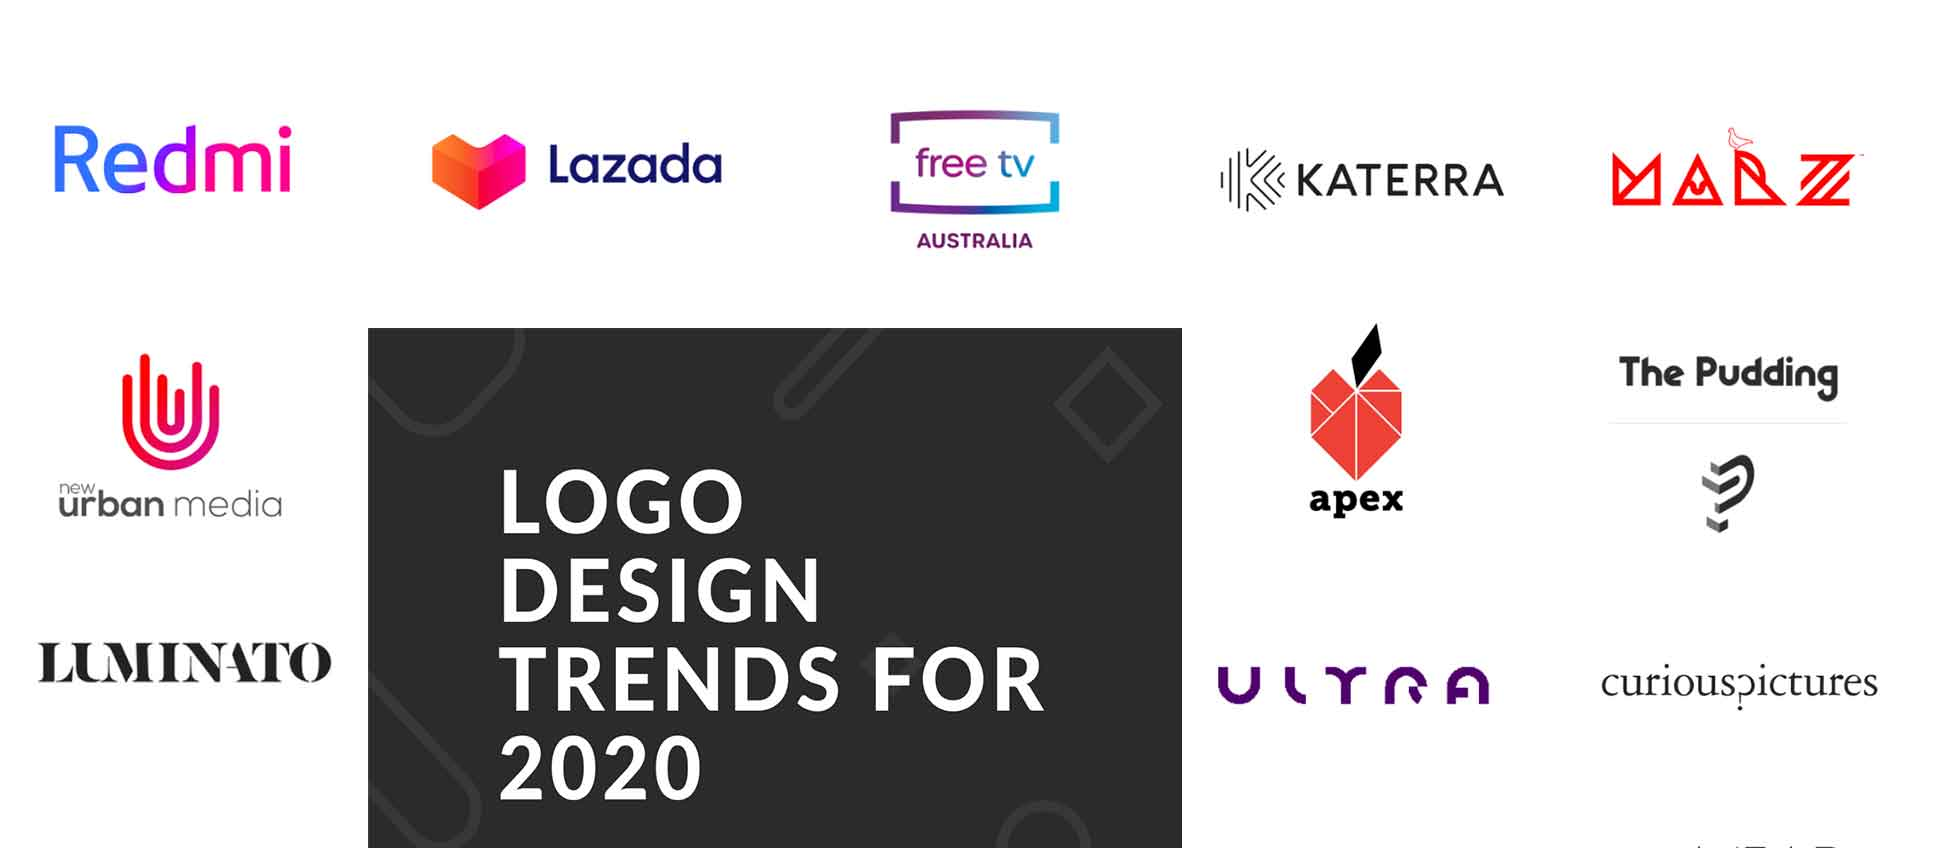 10 logo design trends to try in 2020 [Infographic]